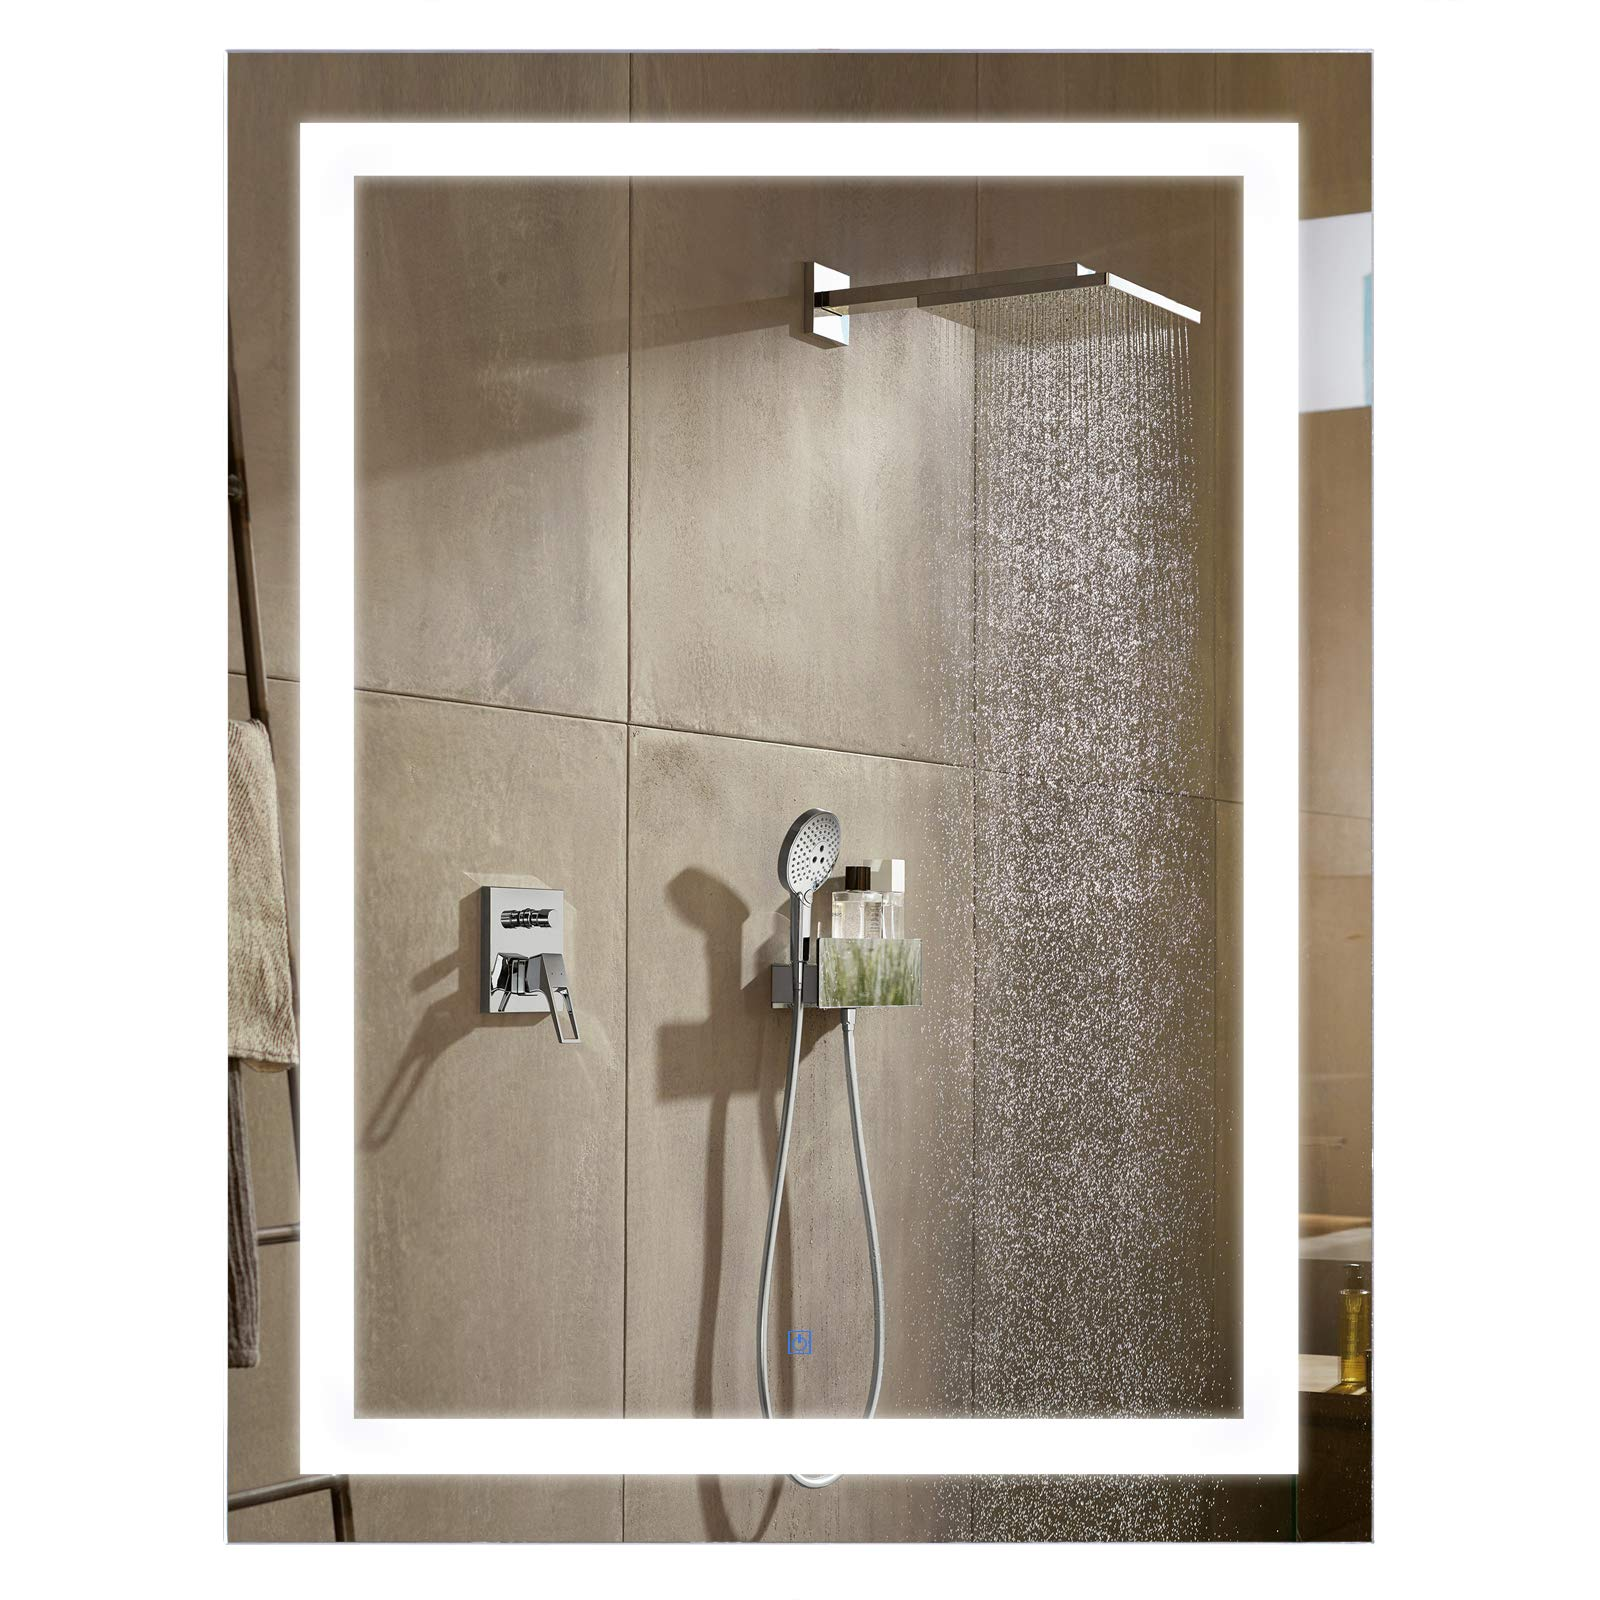 HomCom LED Wall Mount Bathroom Vanity Make Up Mirror w/Defogger - 32'' x 24'' by HOMCOM